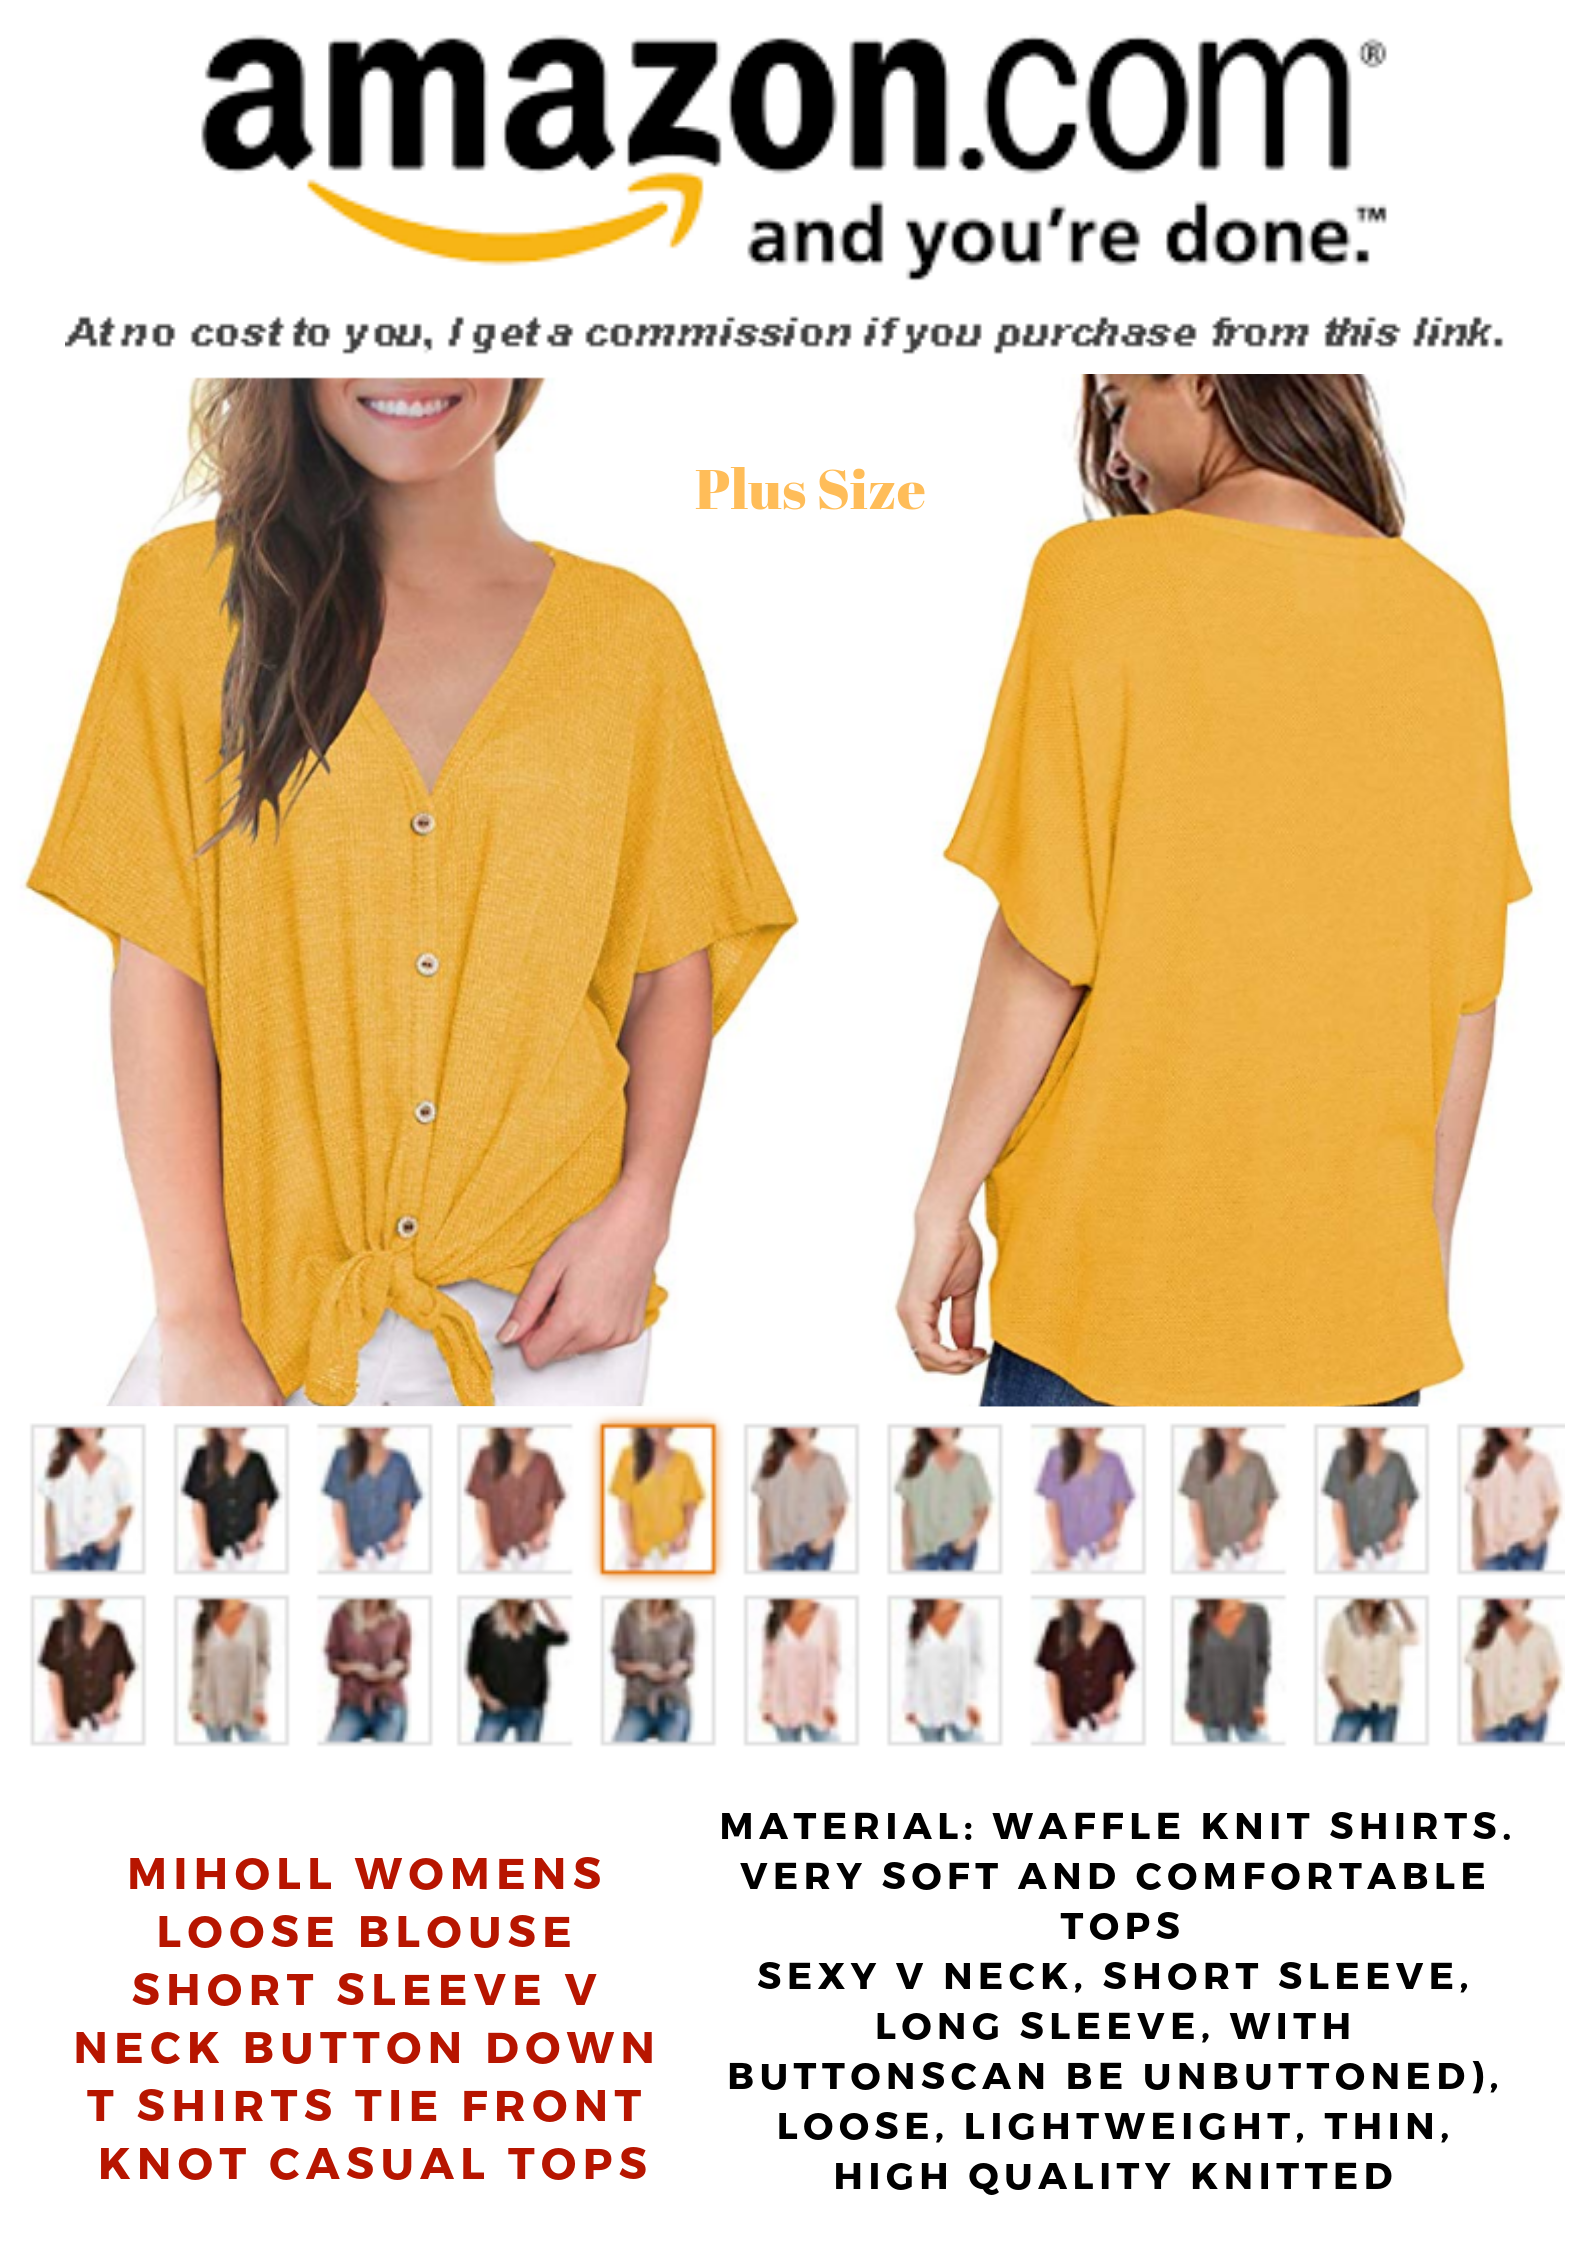 71cbad8a MIHOLL Womens Loose Blouse Short Sleeve V Neck Button Down T Shirts Tie  Front Knot Casual Tops | Plus Size Fashion in 2019 | Blouse, Fashion,  Casual tops